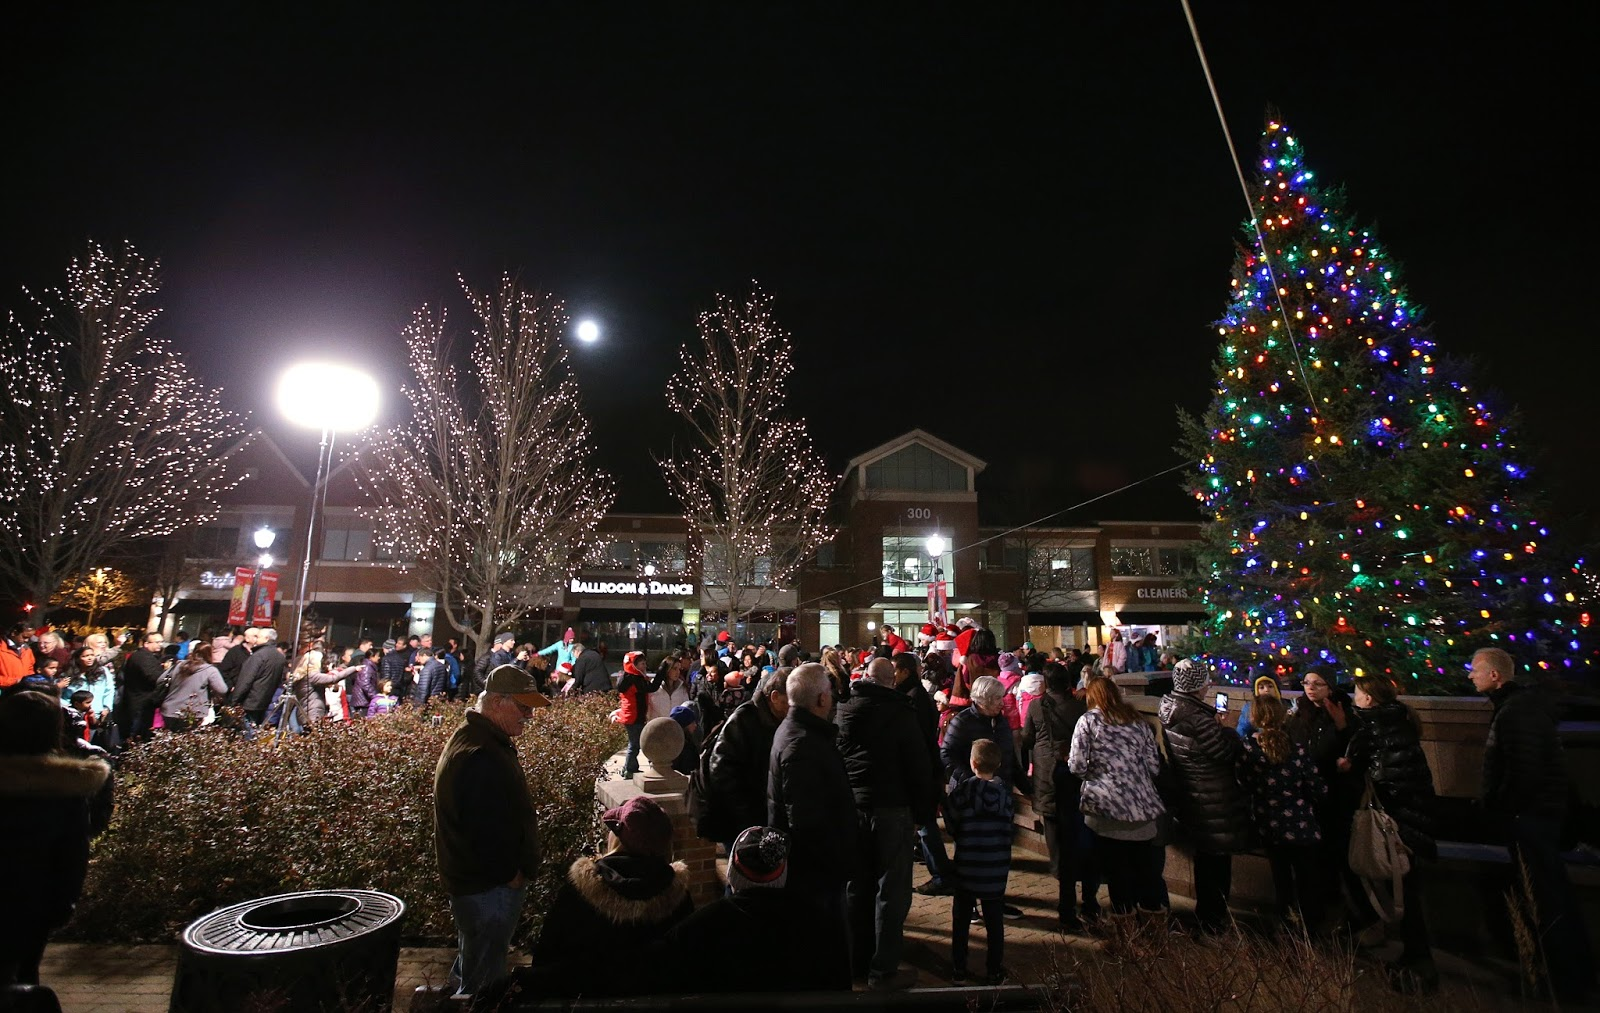 Lincolnshire's Tree Lighting Ceremony